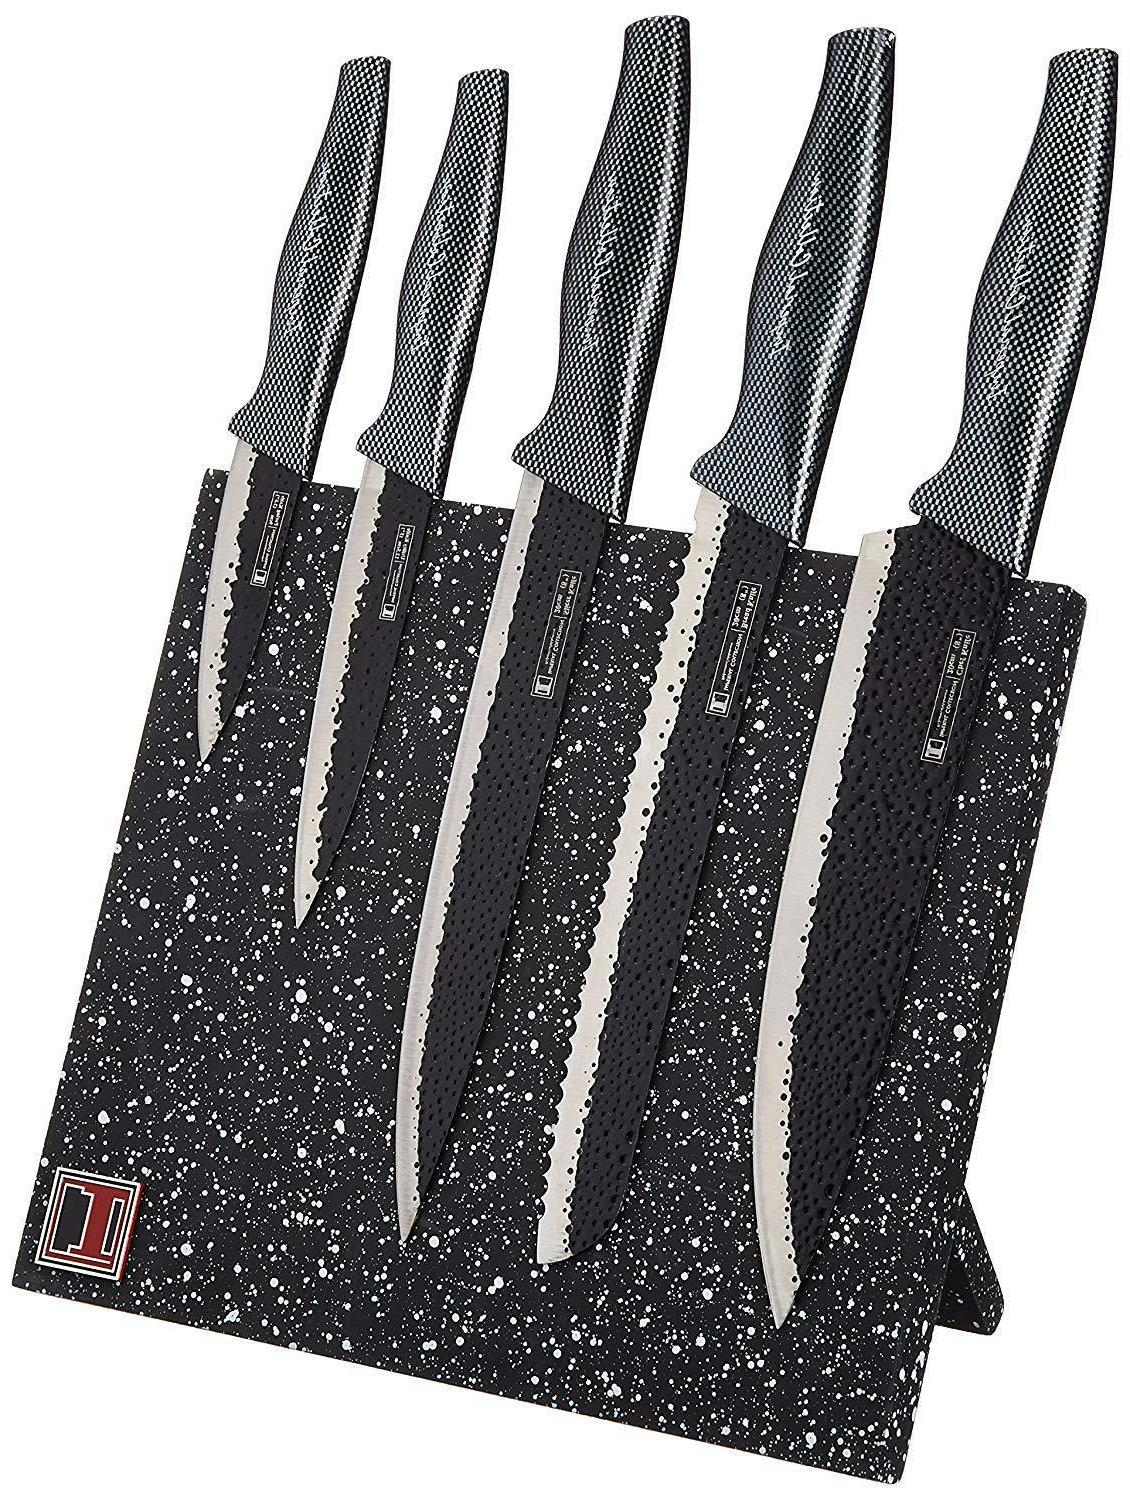 Imperial Collection Stainless Steel 6-Piece Knife Set with M